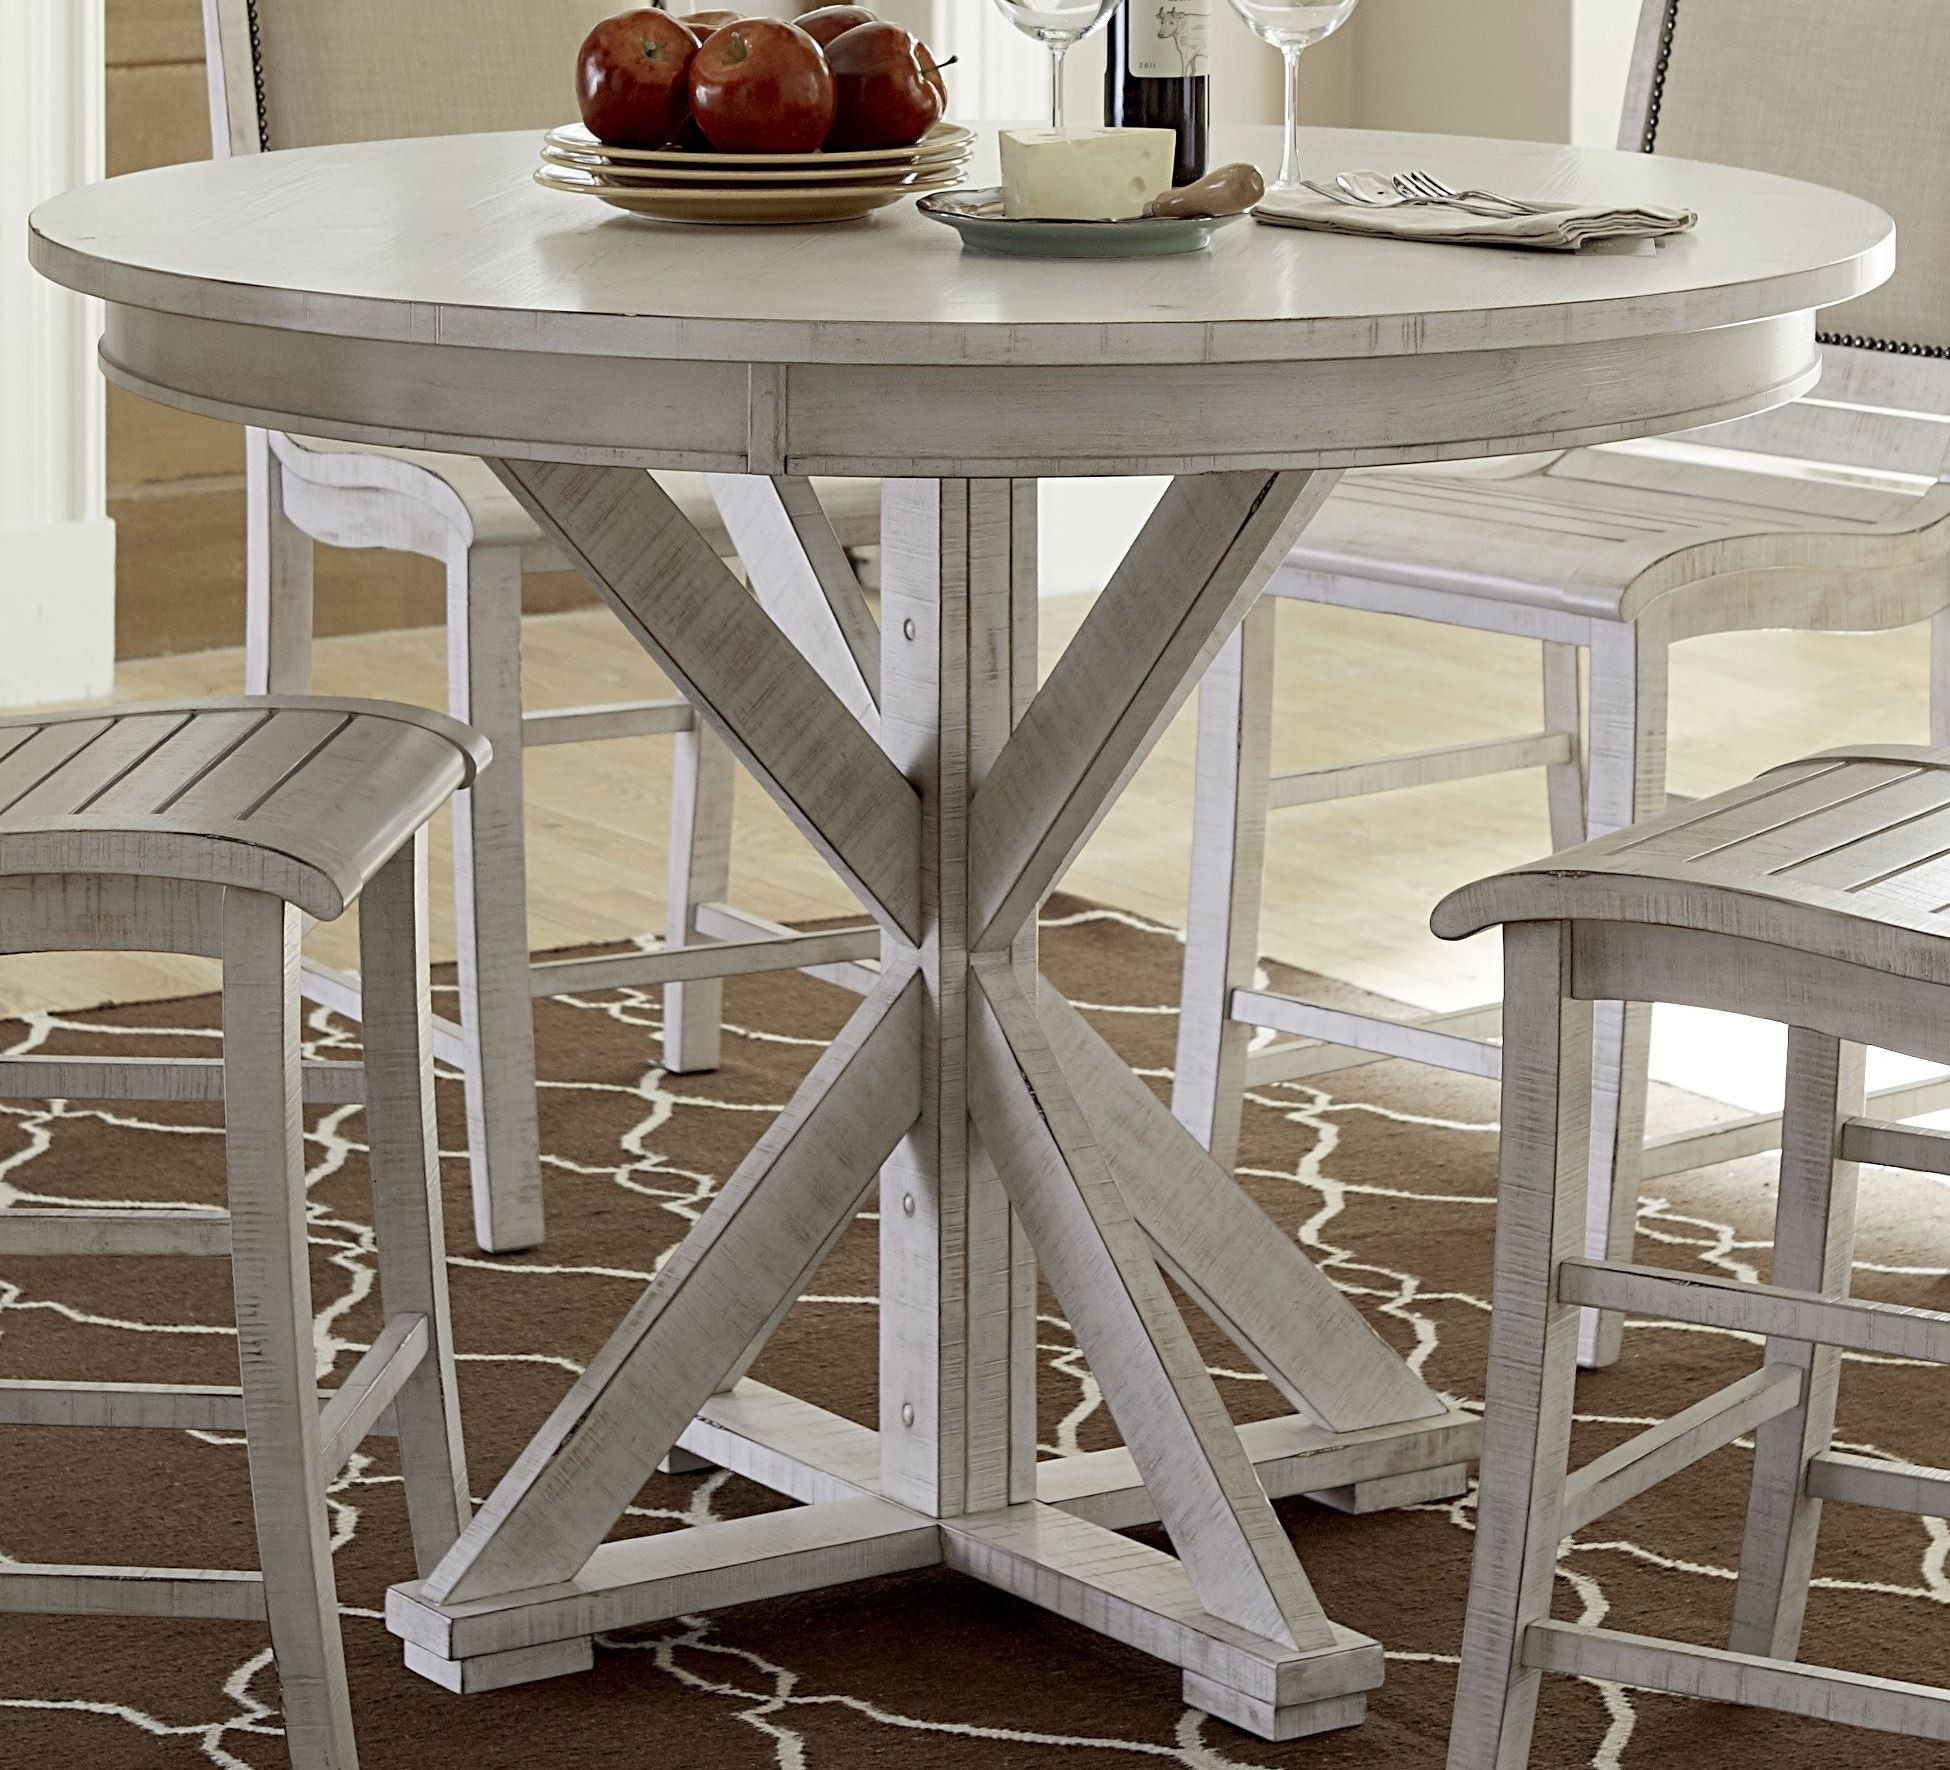 Willow distressed white round counter height dining table for Distressed white dining table